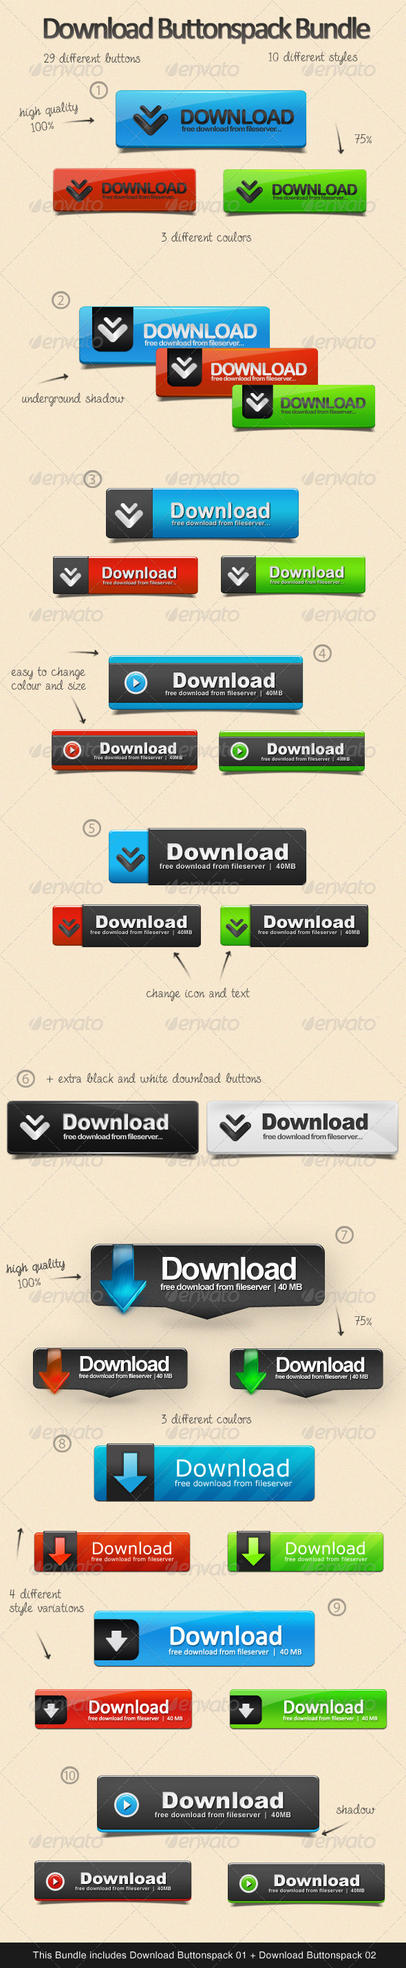 Download Buttonspack Bundle by KL-Webmedia